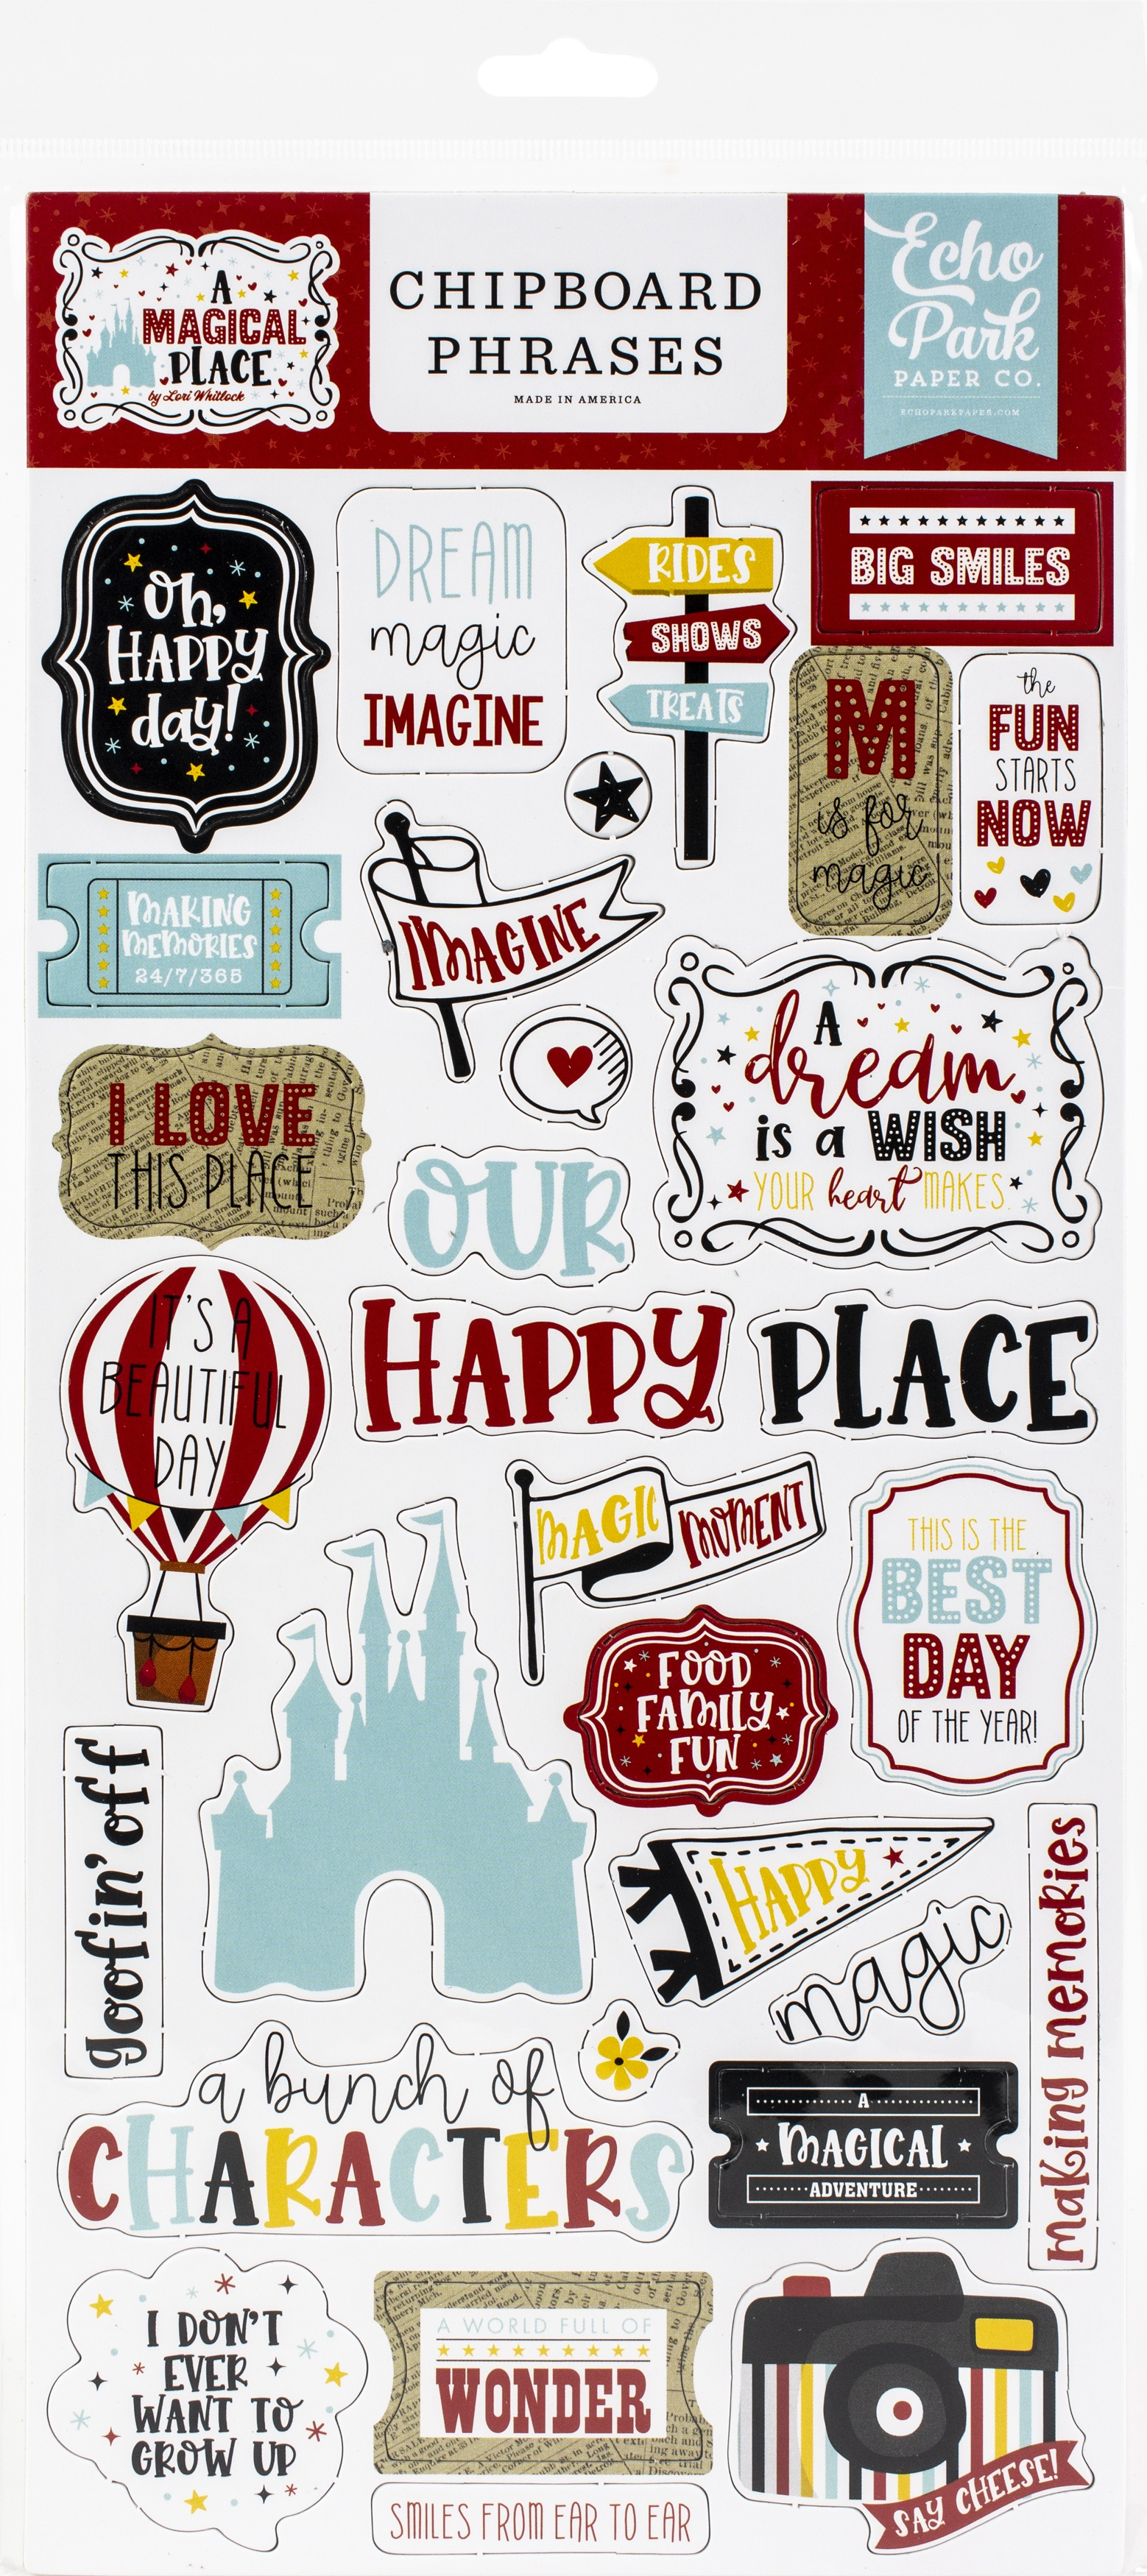 Echo Park - A Magical Place Chipboard Phrases